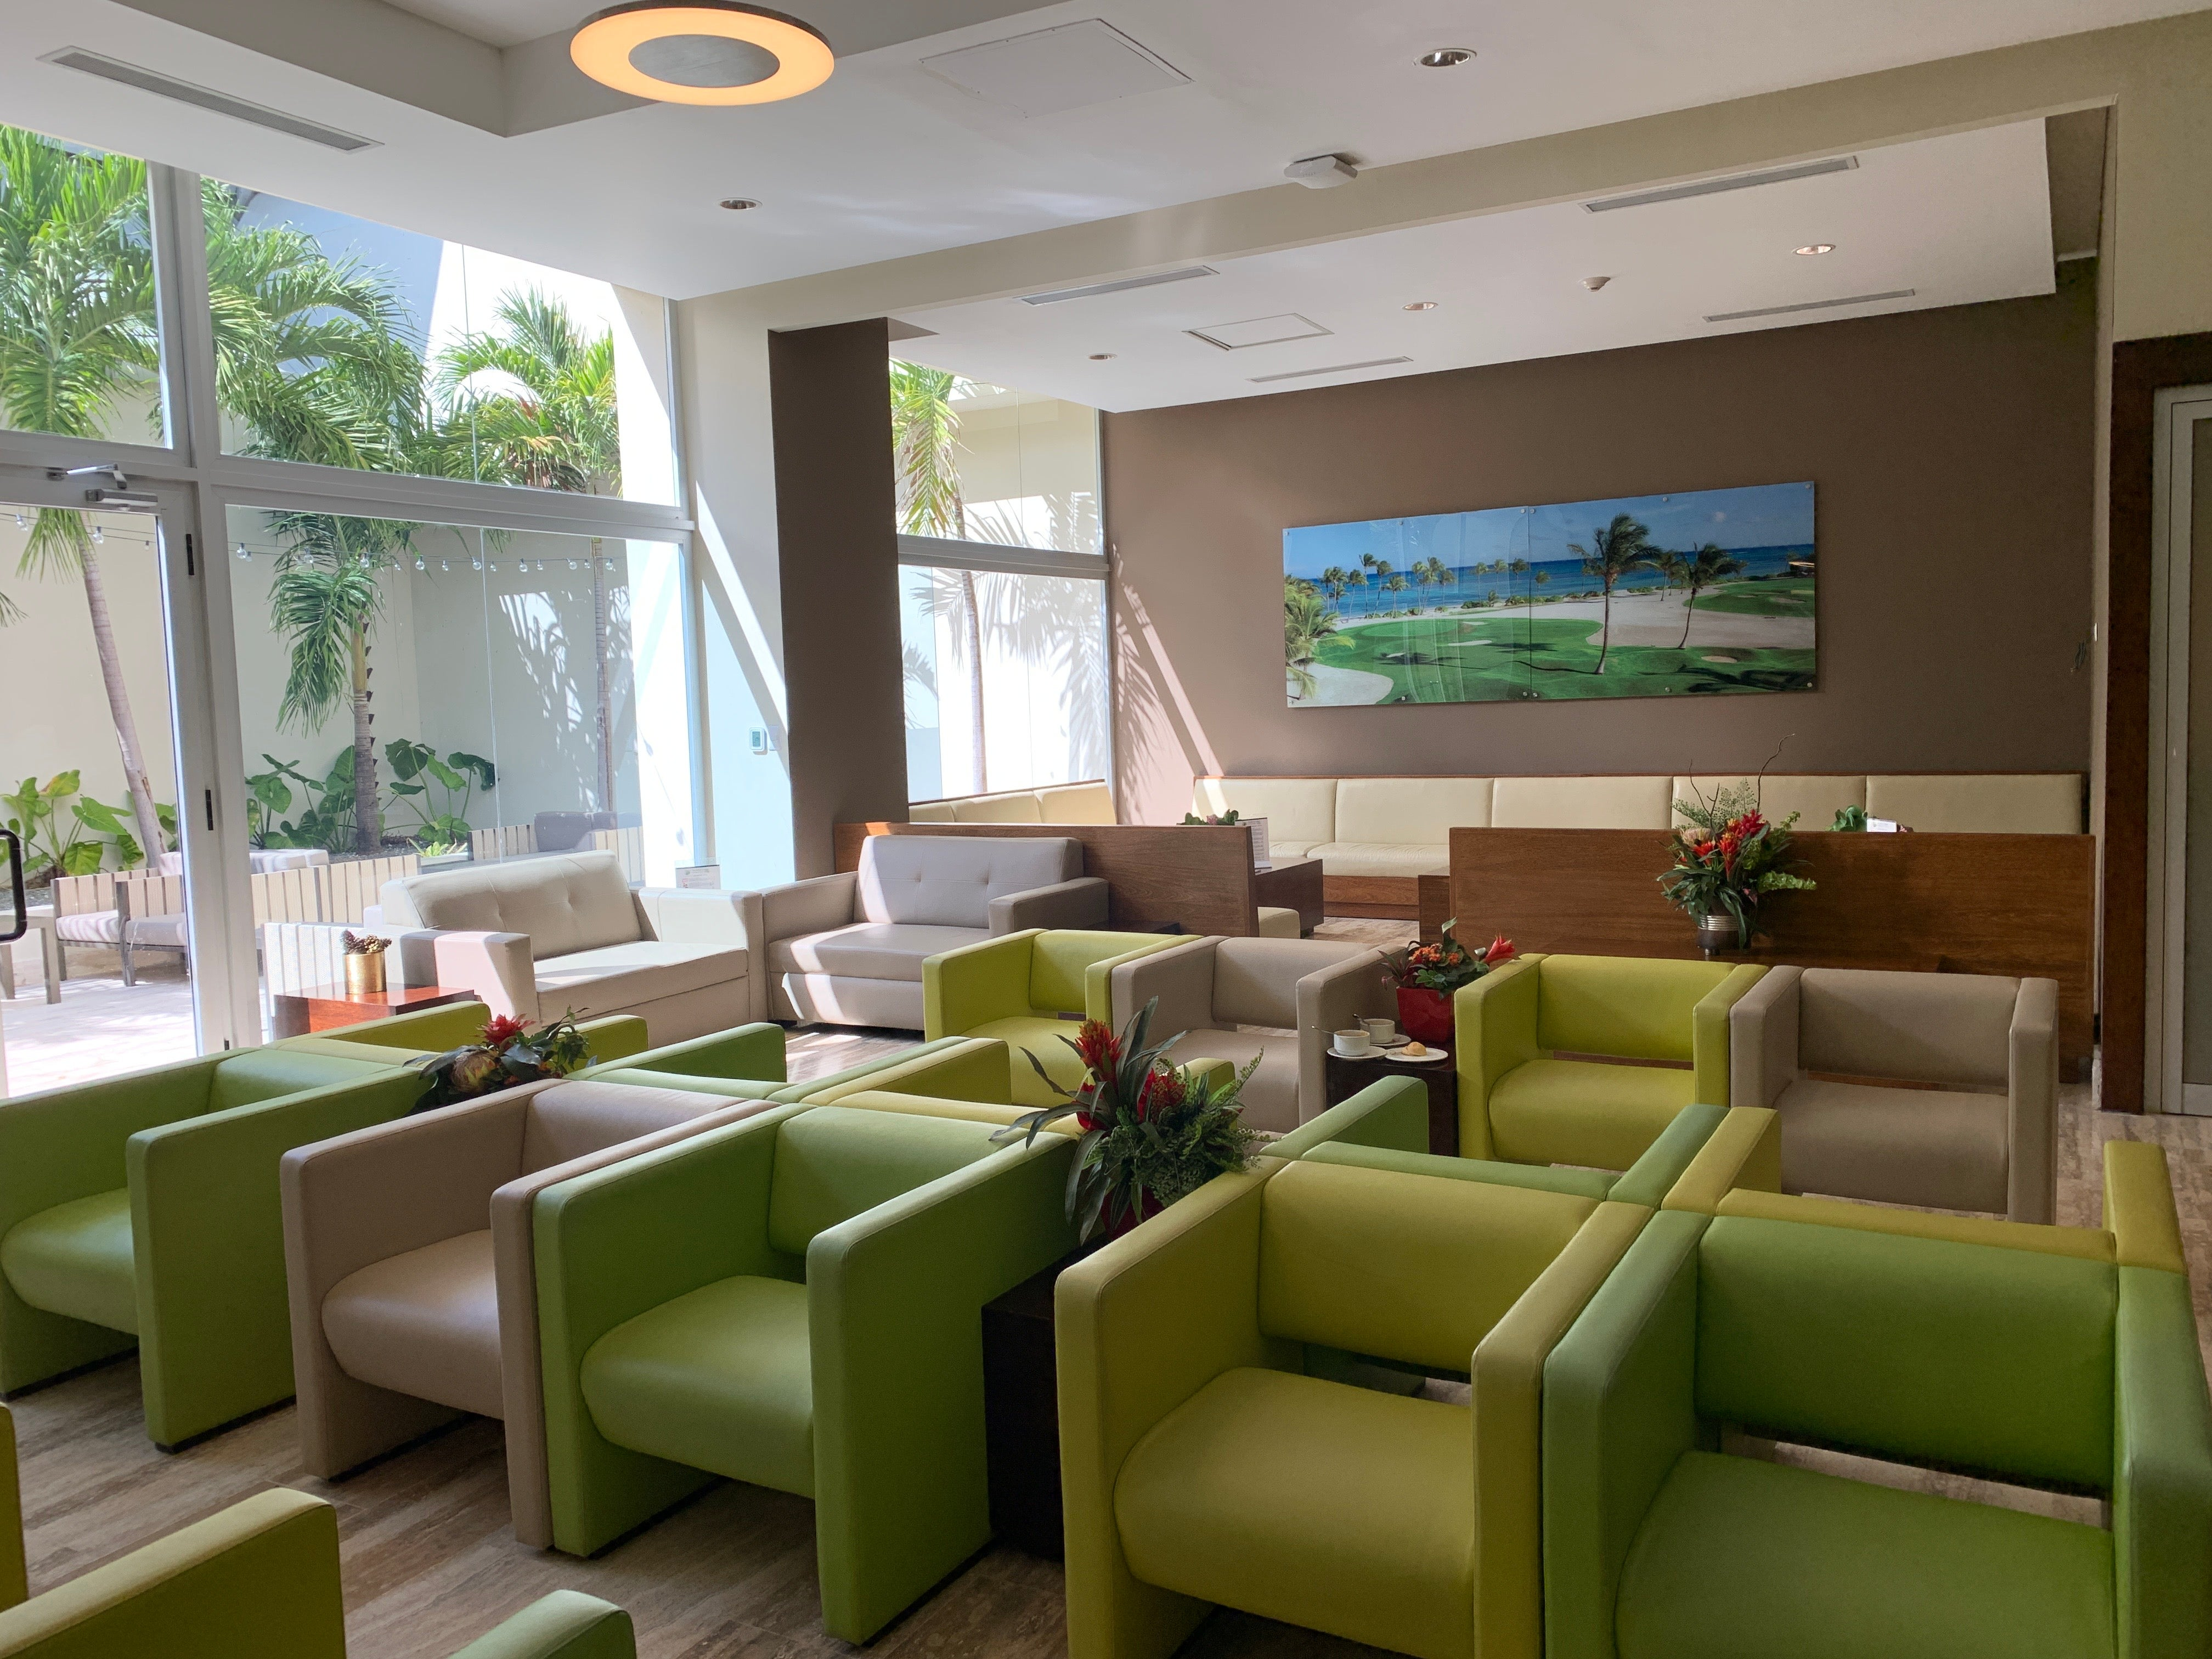 The Priority Pass lounge in Punta Cana (Summer Hull/The Points Guy)